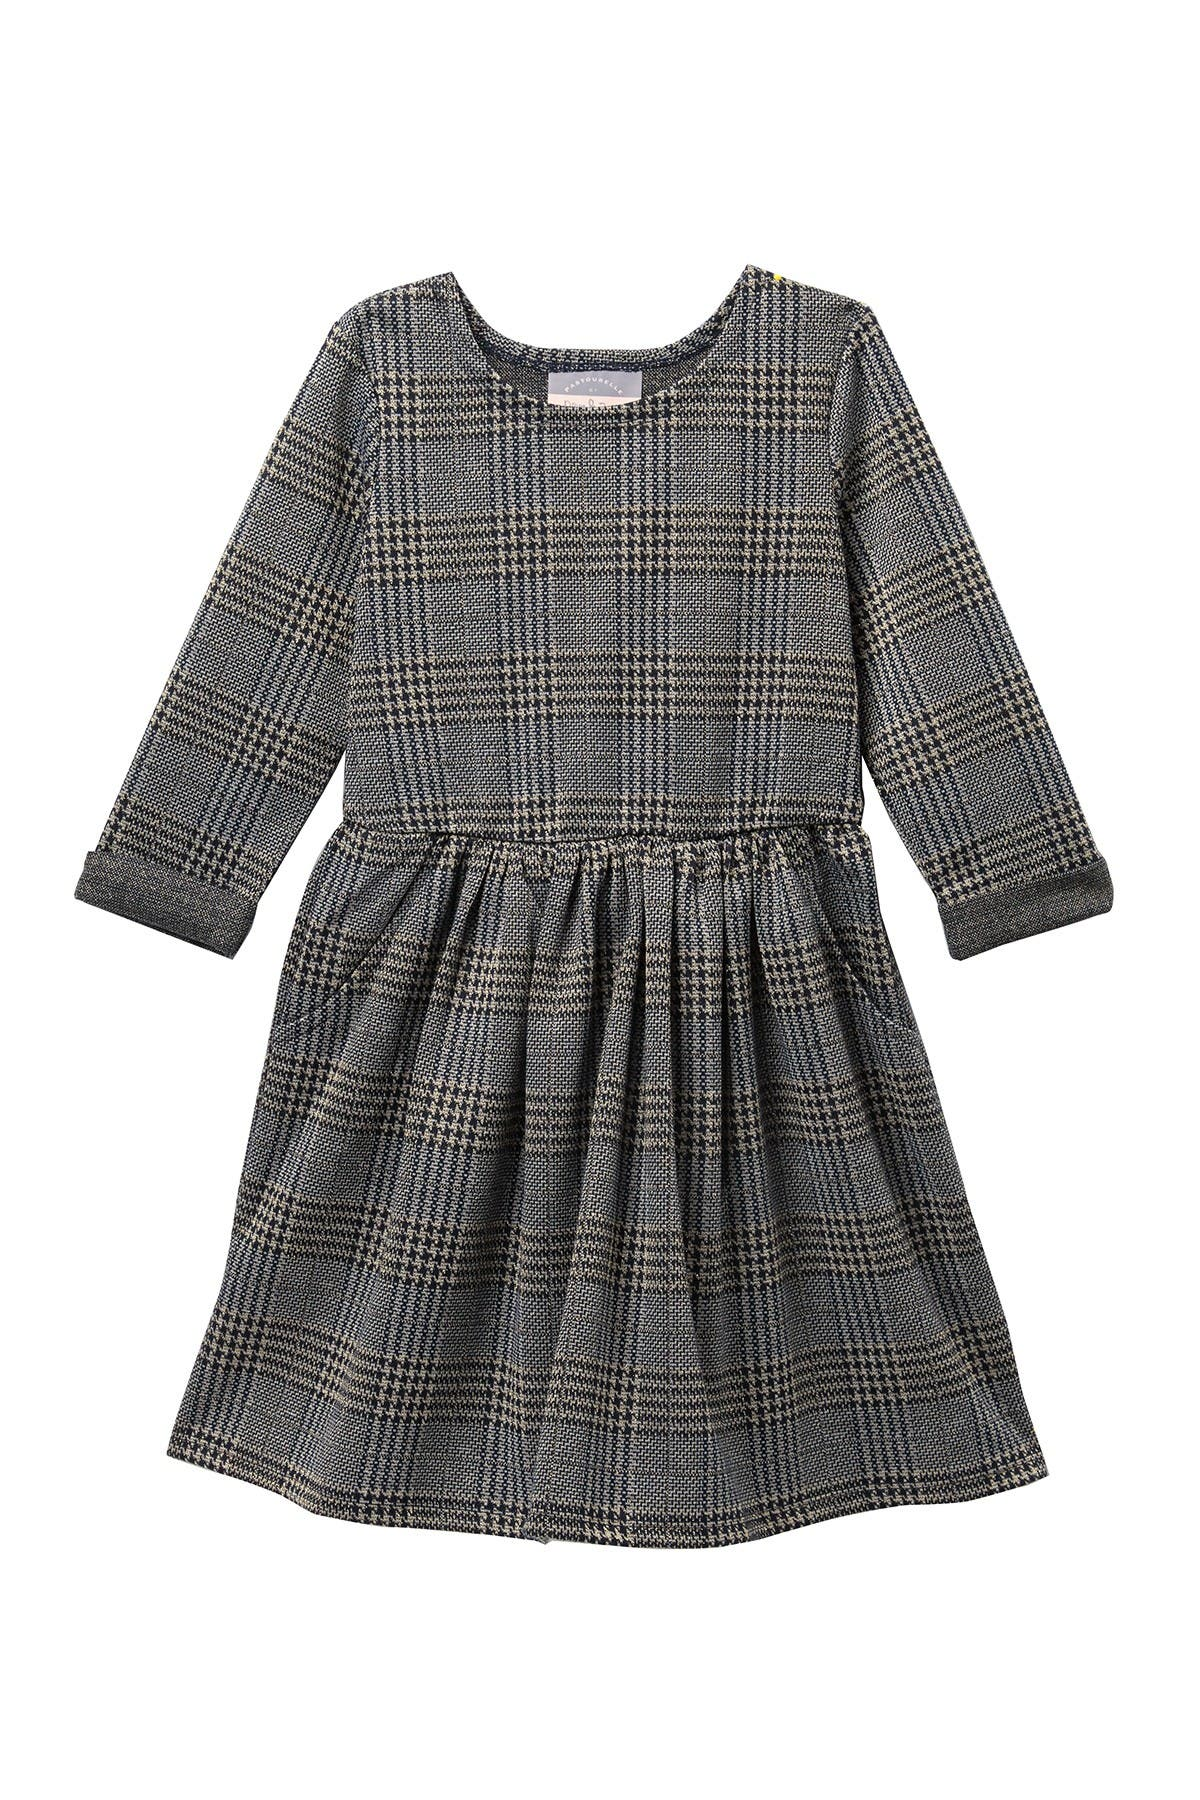 Image of Pastourelle by Pippa and Julie Three Quarter Rolled Sleeves Plaid Dress